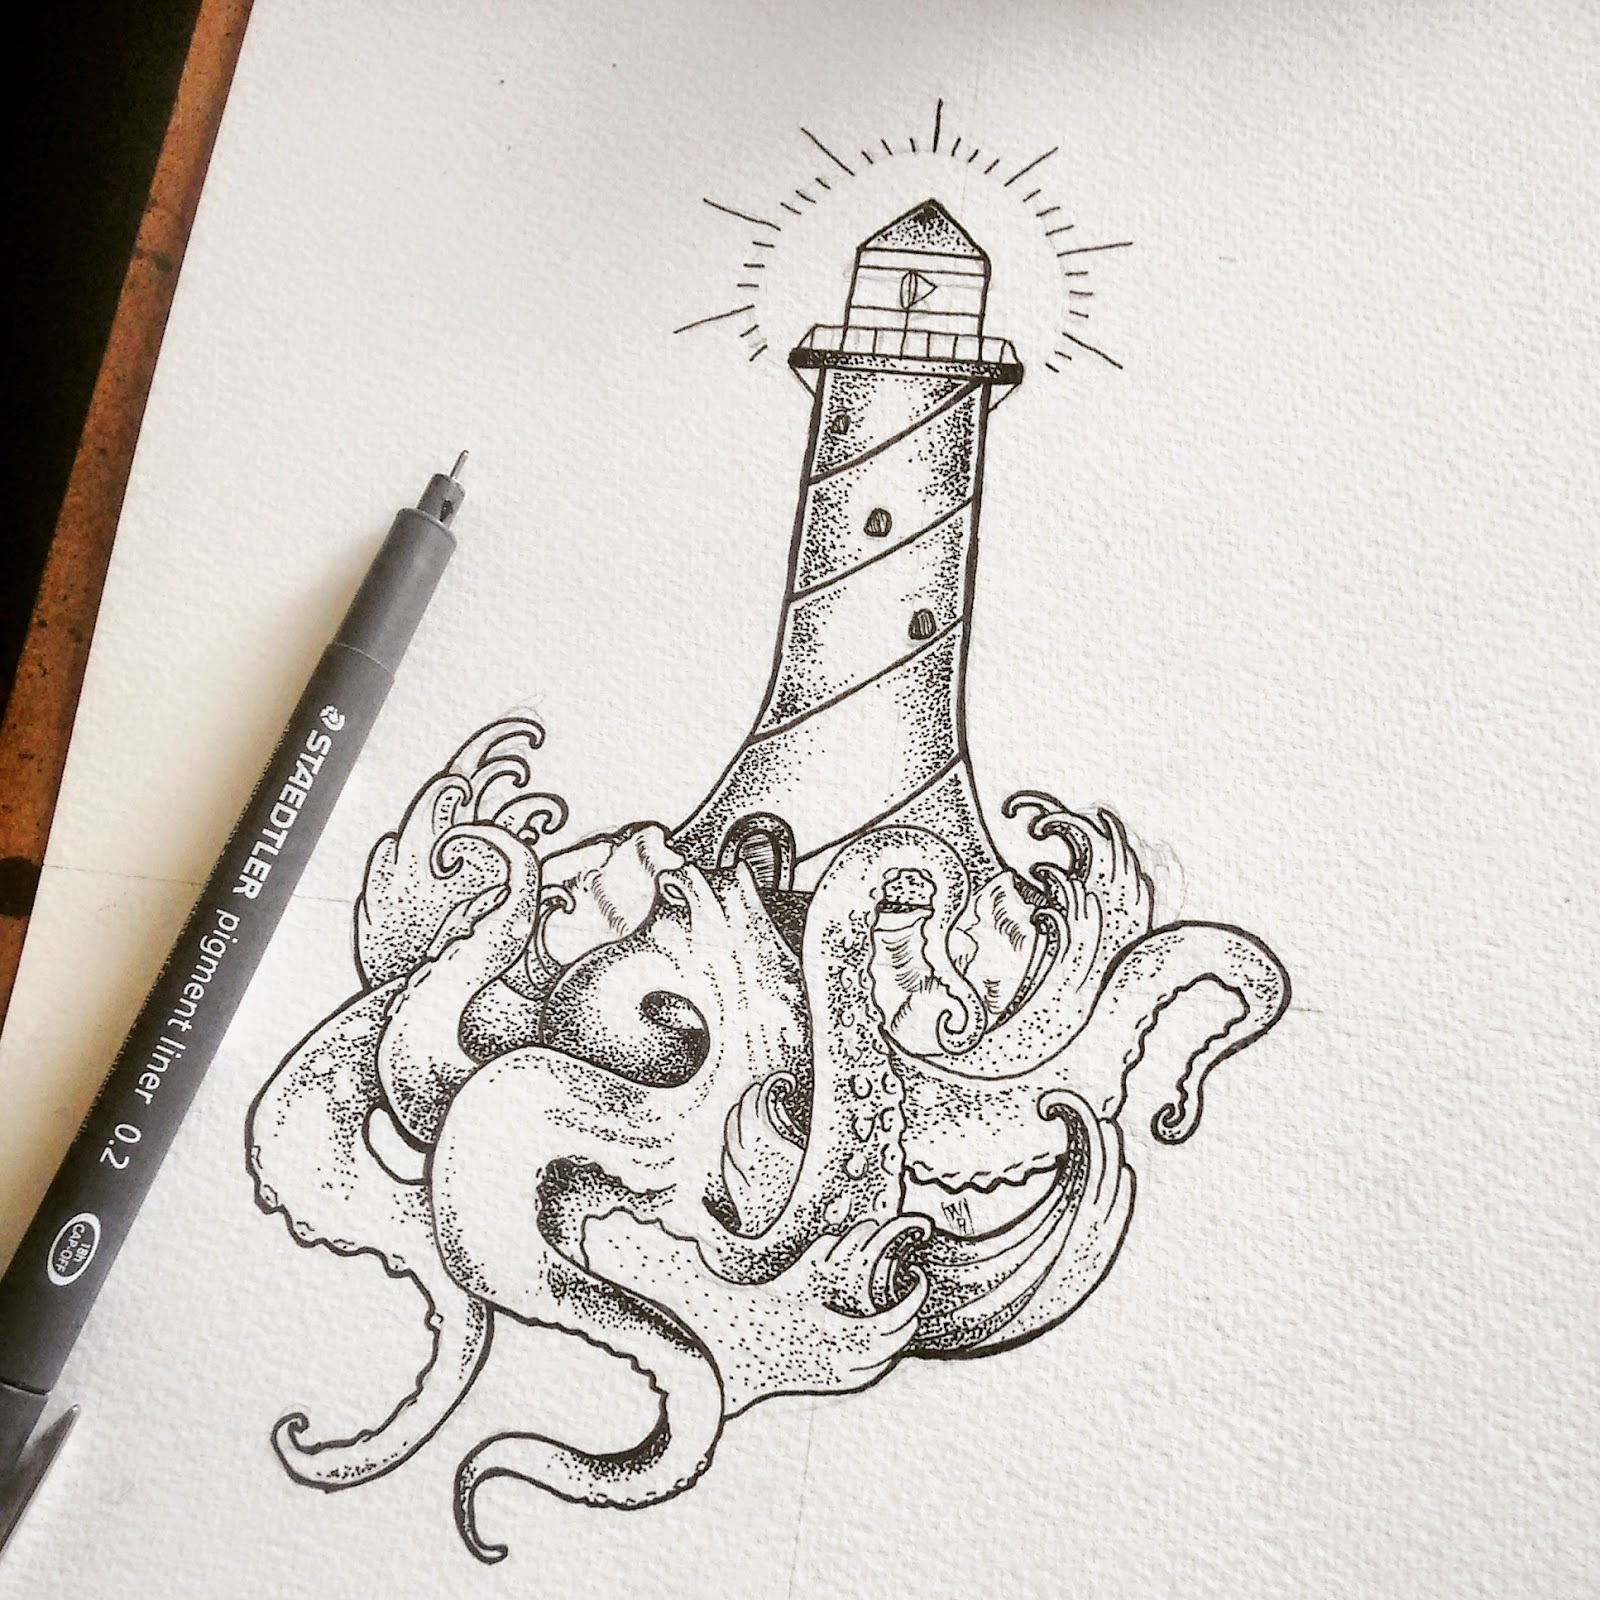 desenho dotwork, desenho de sereia, tattoo design, watercolor, watercolor tattoo, watercolour, watercolor art, old school tattoo, tatuador aquarela, tattoo, aquarela, pontilhismo, como fazer pontilhismo, onde tatuar aquarela, como tatuar aquarela, como pintar com aquarela, como fazer dotwork, dotwork design